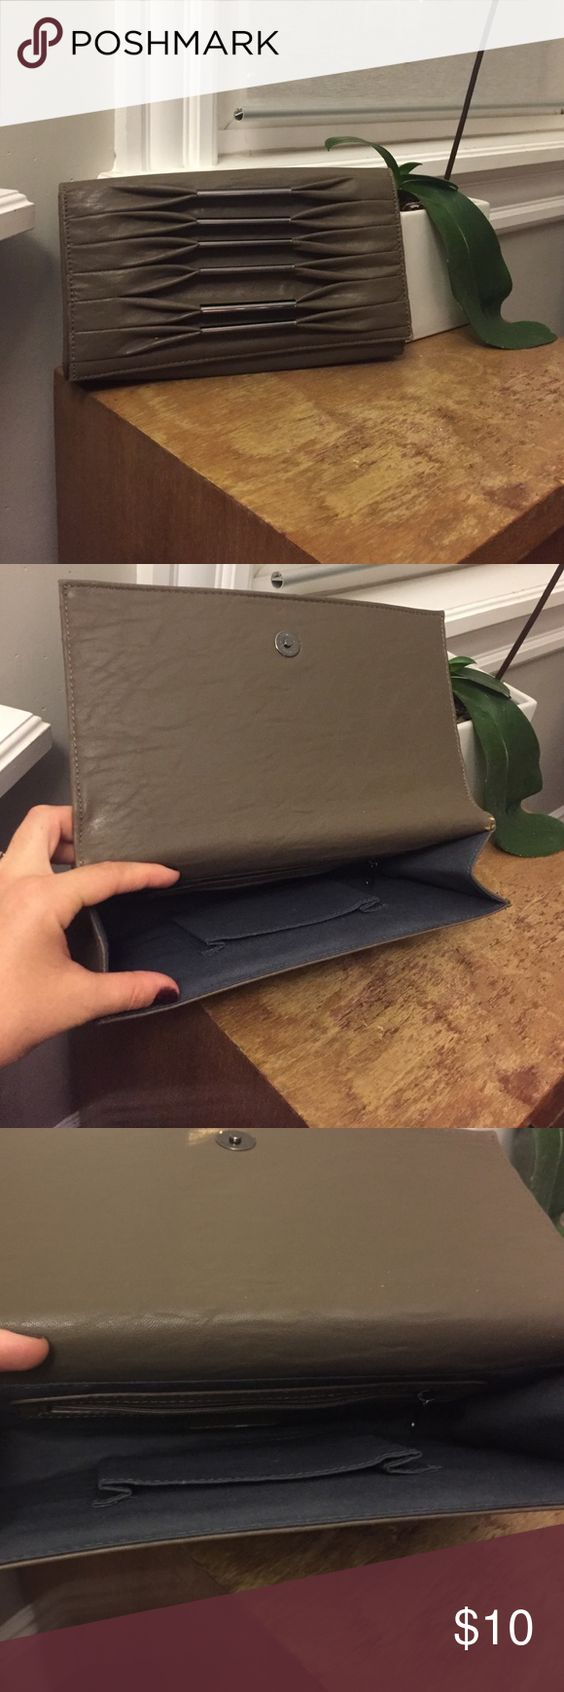 Large grey clutch Large grey clutch. Not real leather. Originally from DSW. Very minor wear on one corner. Great for going out! Bags Clutches & Wristlets